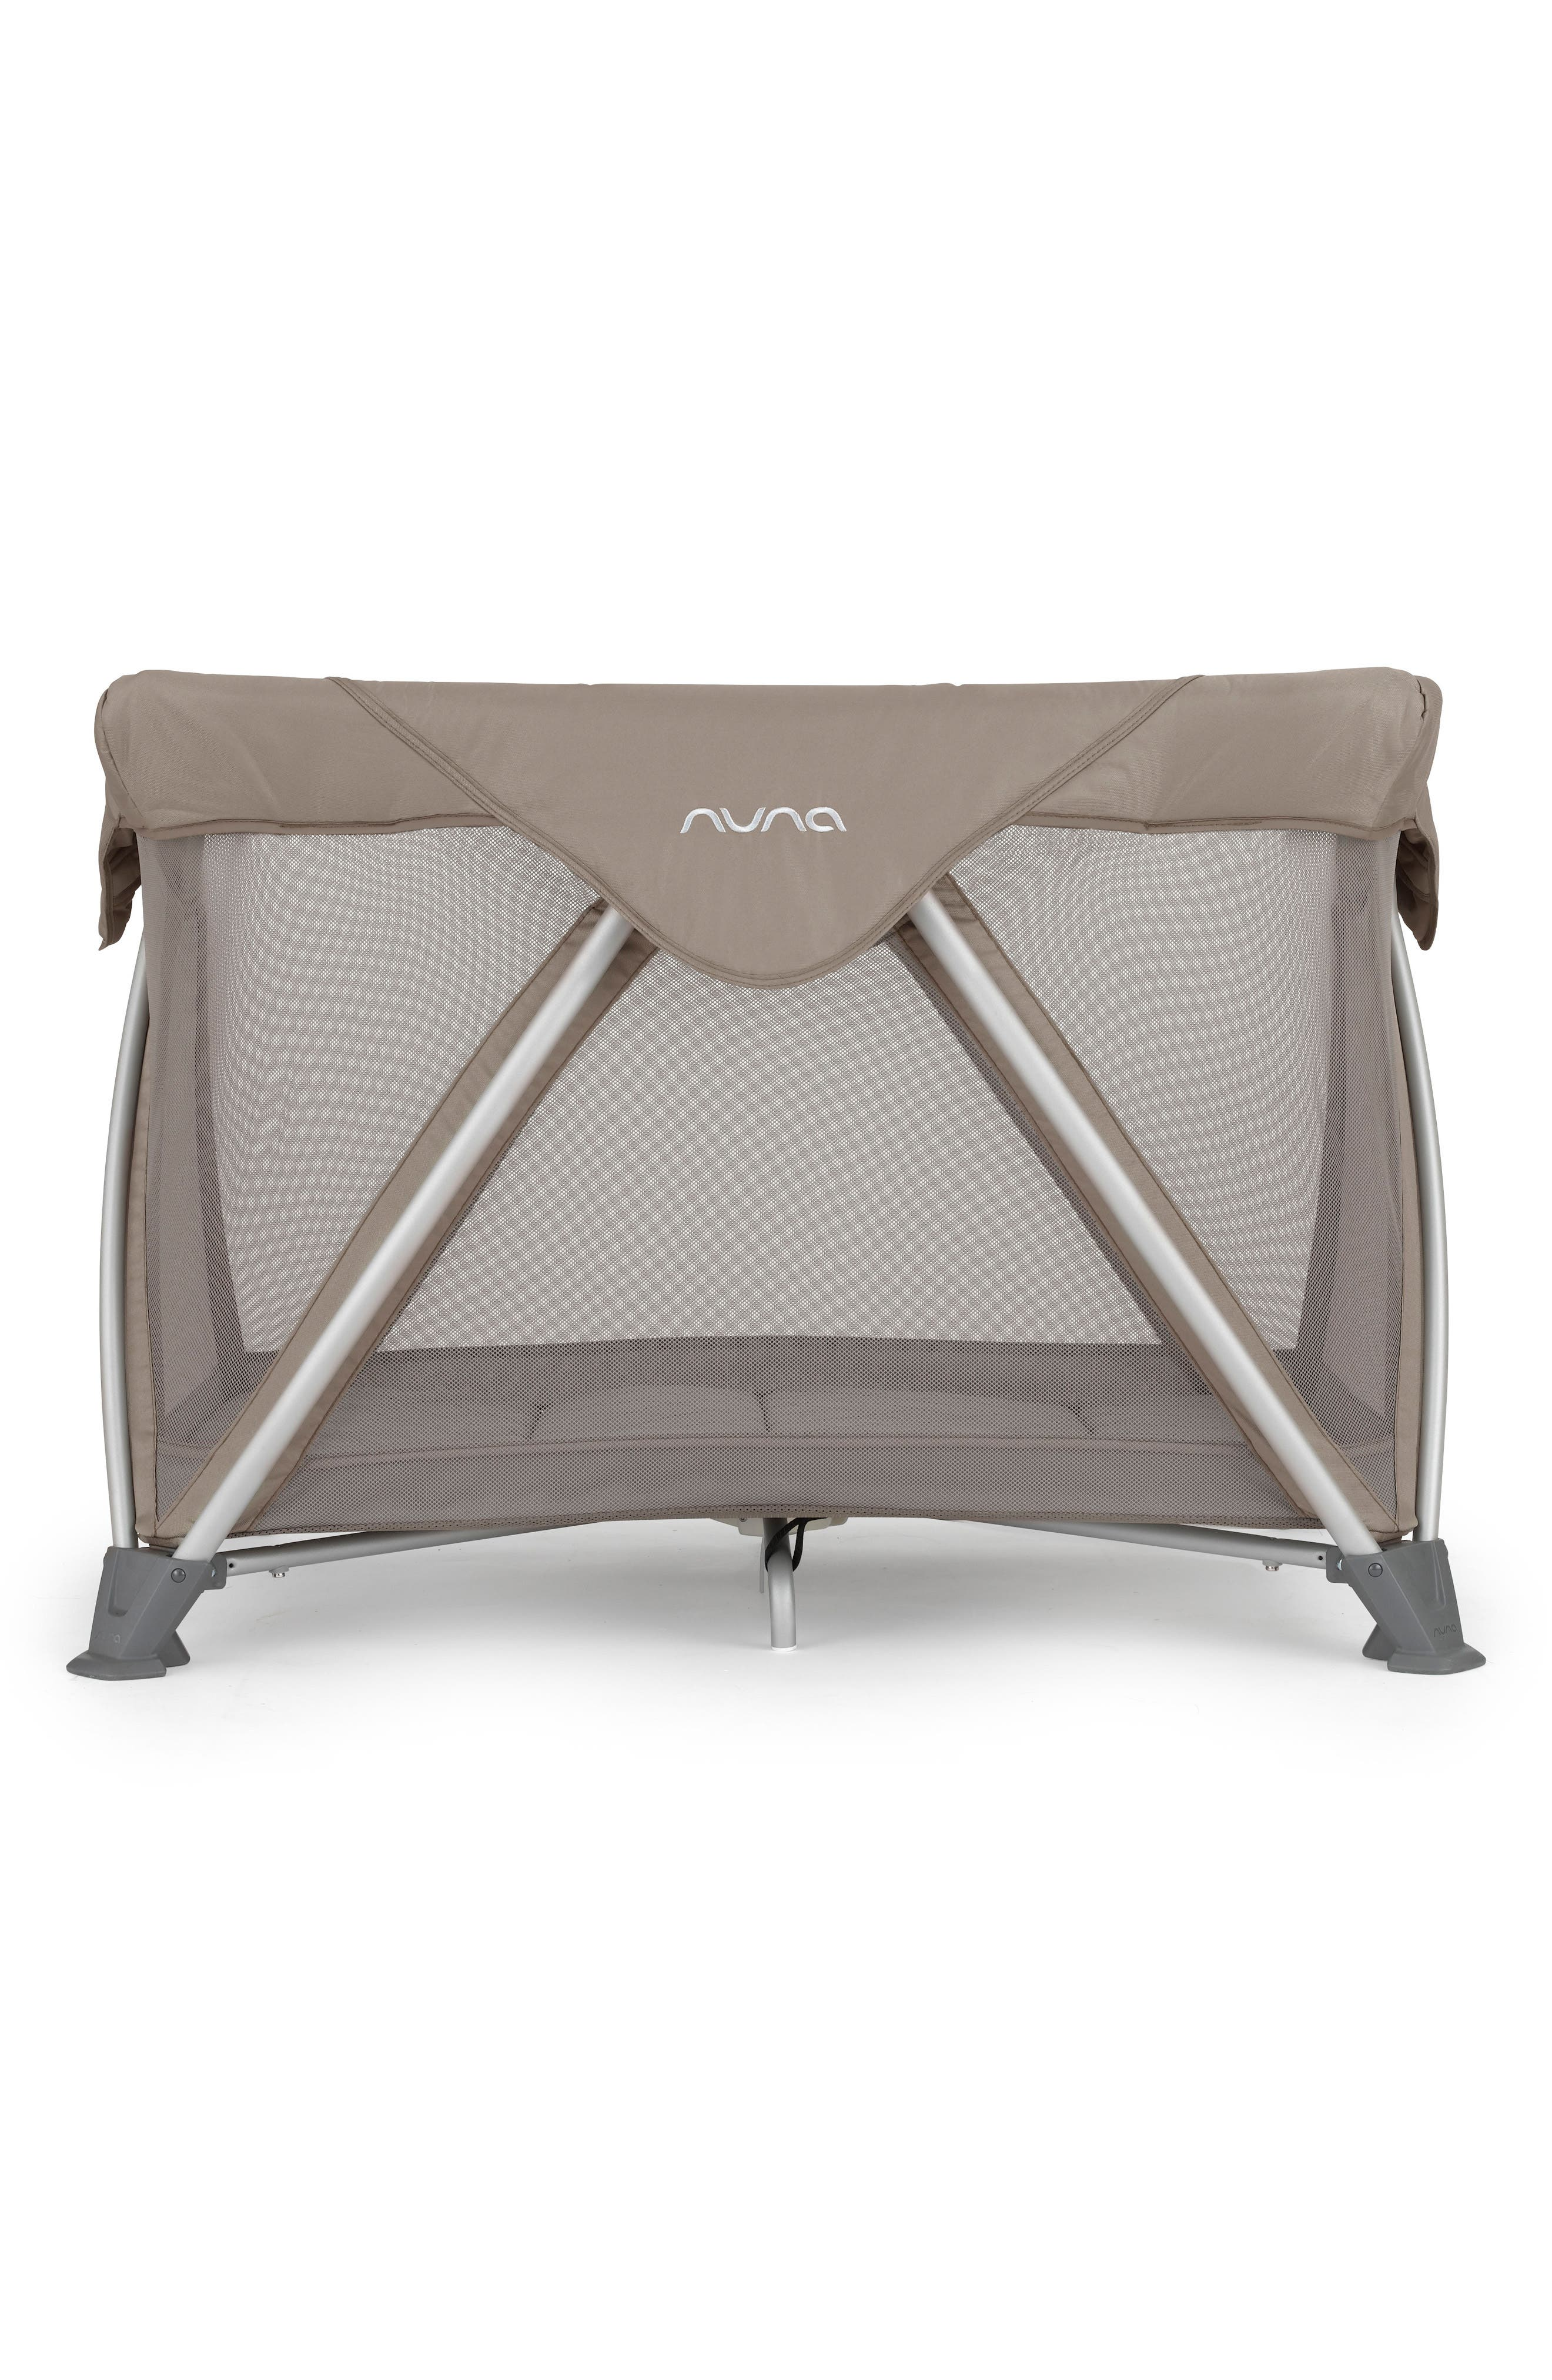 Alternate Image 1 Selected - nuna SENA™ Aire Travel Crib